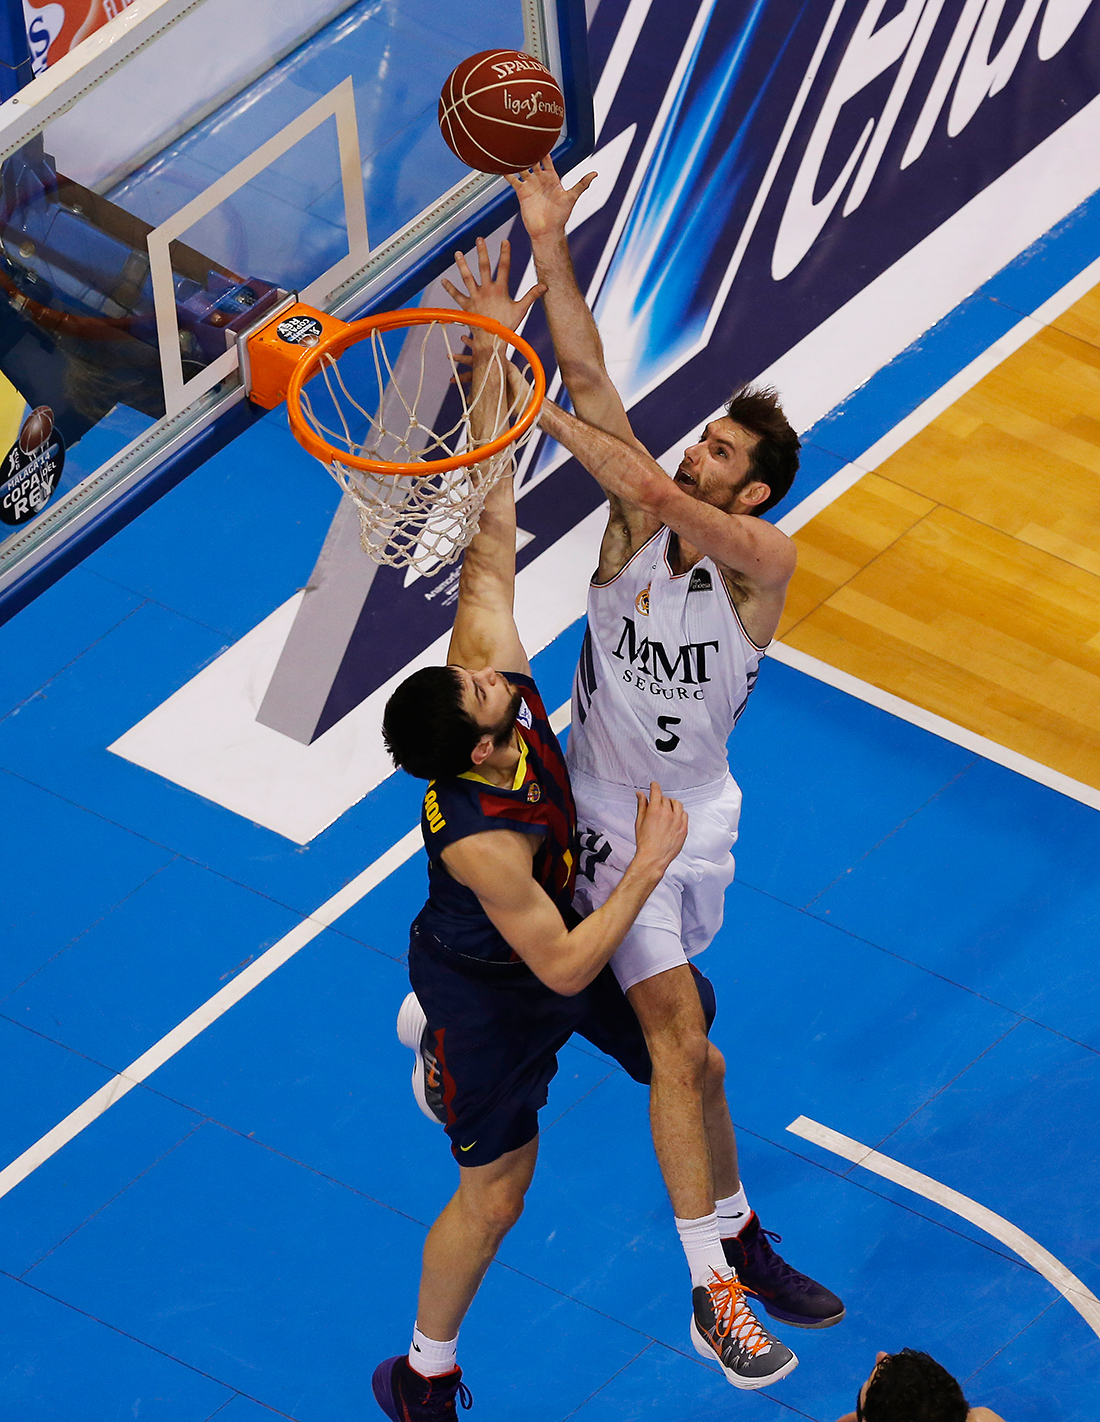 RUDY del real madrid en viva basquet